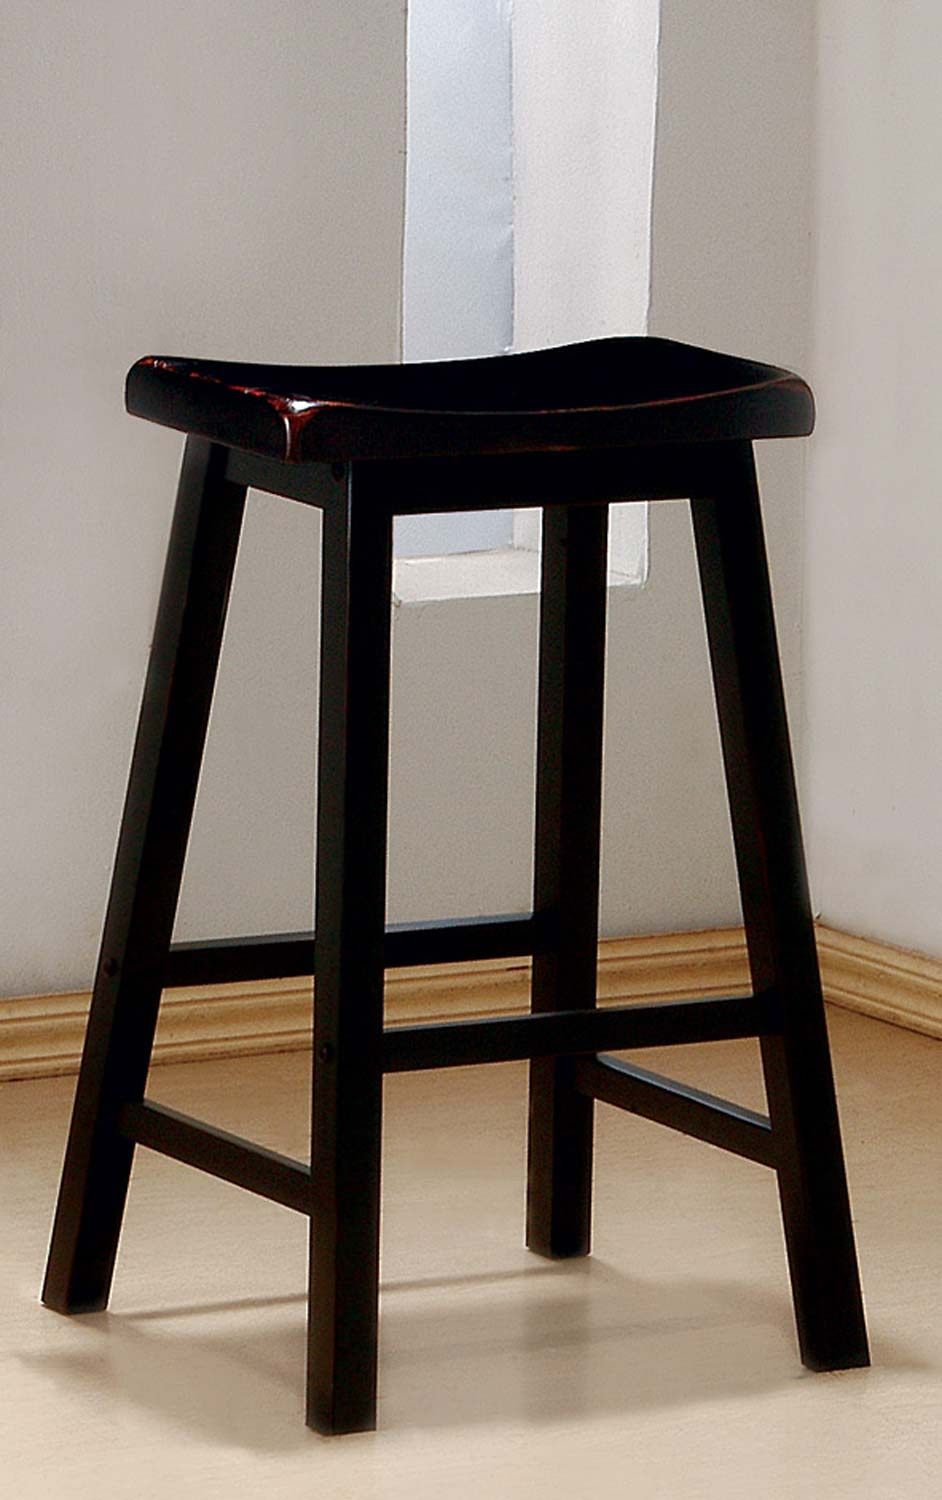 Coaster 180029 Bar Stool - Rich Black